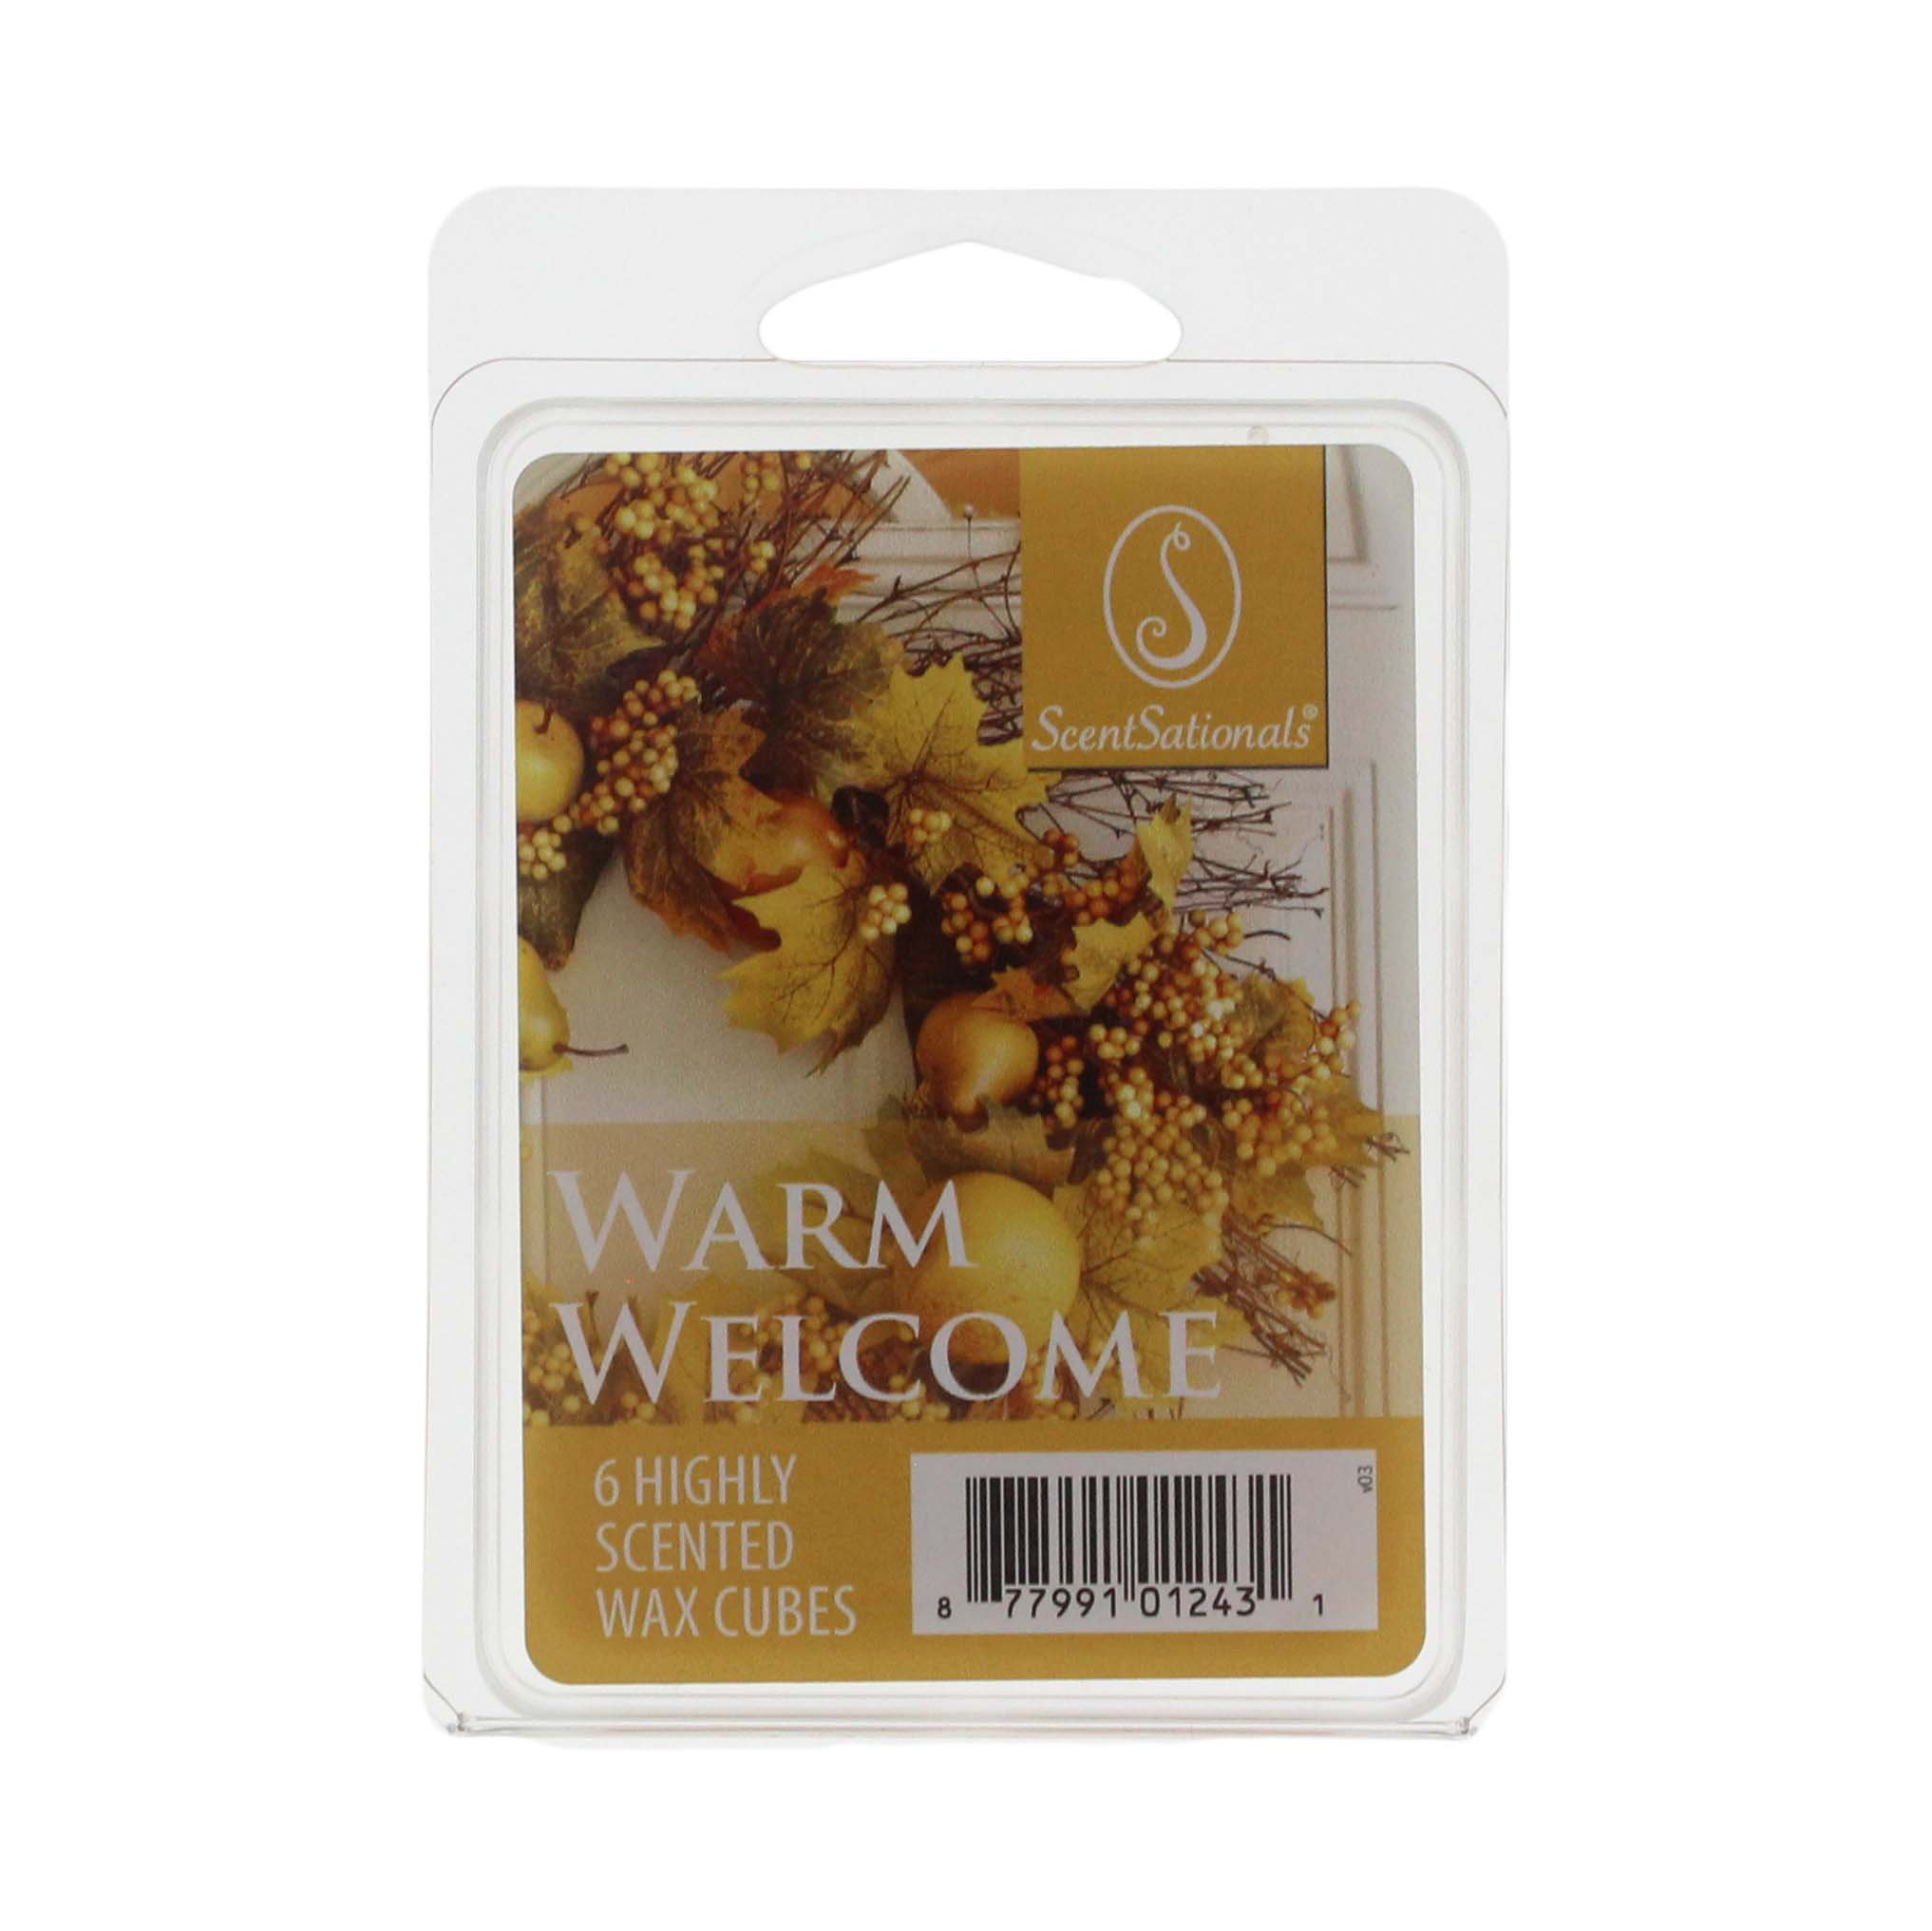 Scentsationals Warm Welcome Scented Wax Cubes Shop Scented Oils Wax At H E B